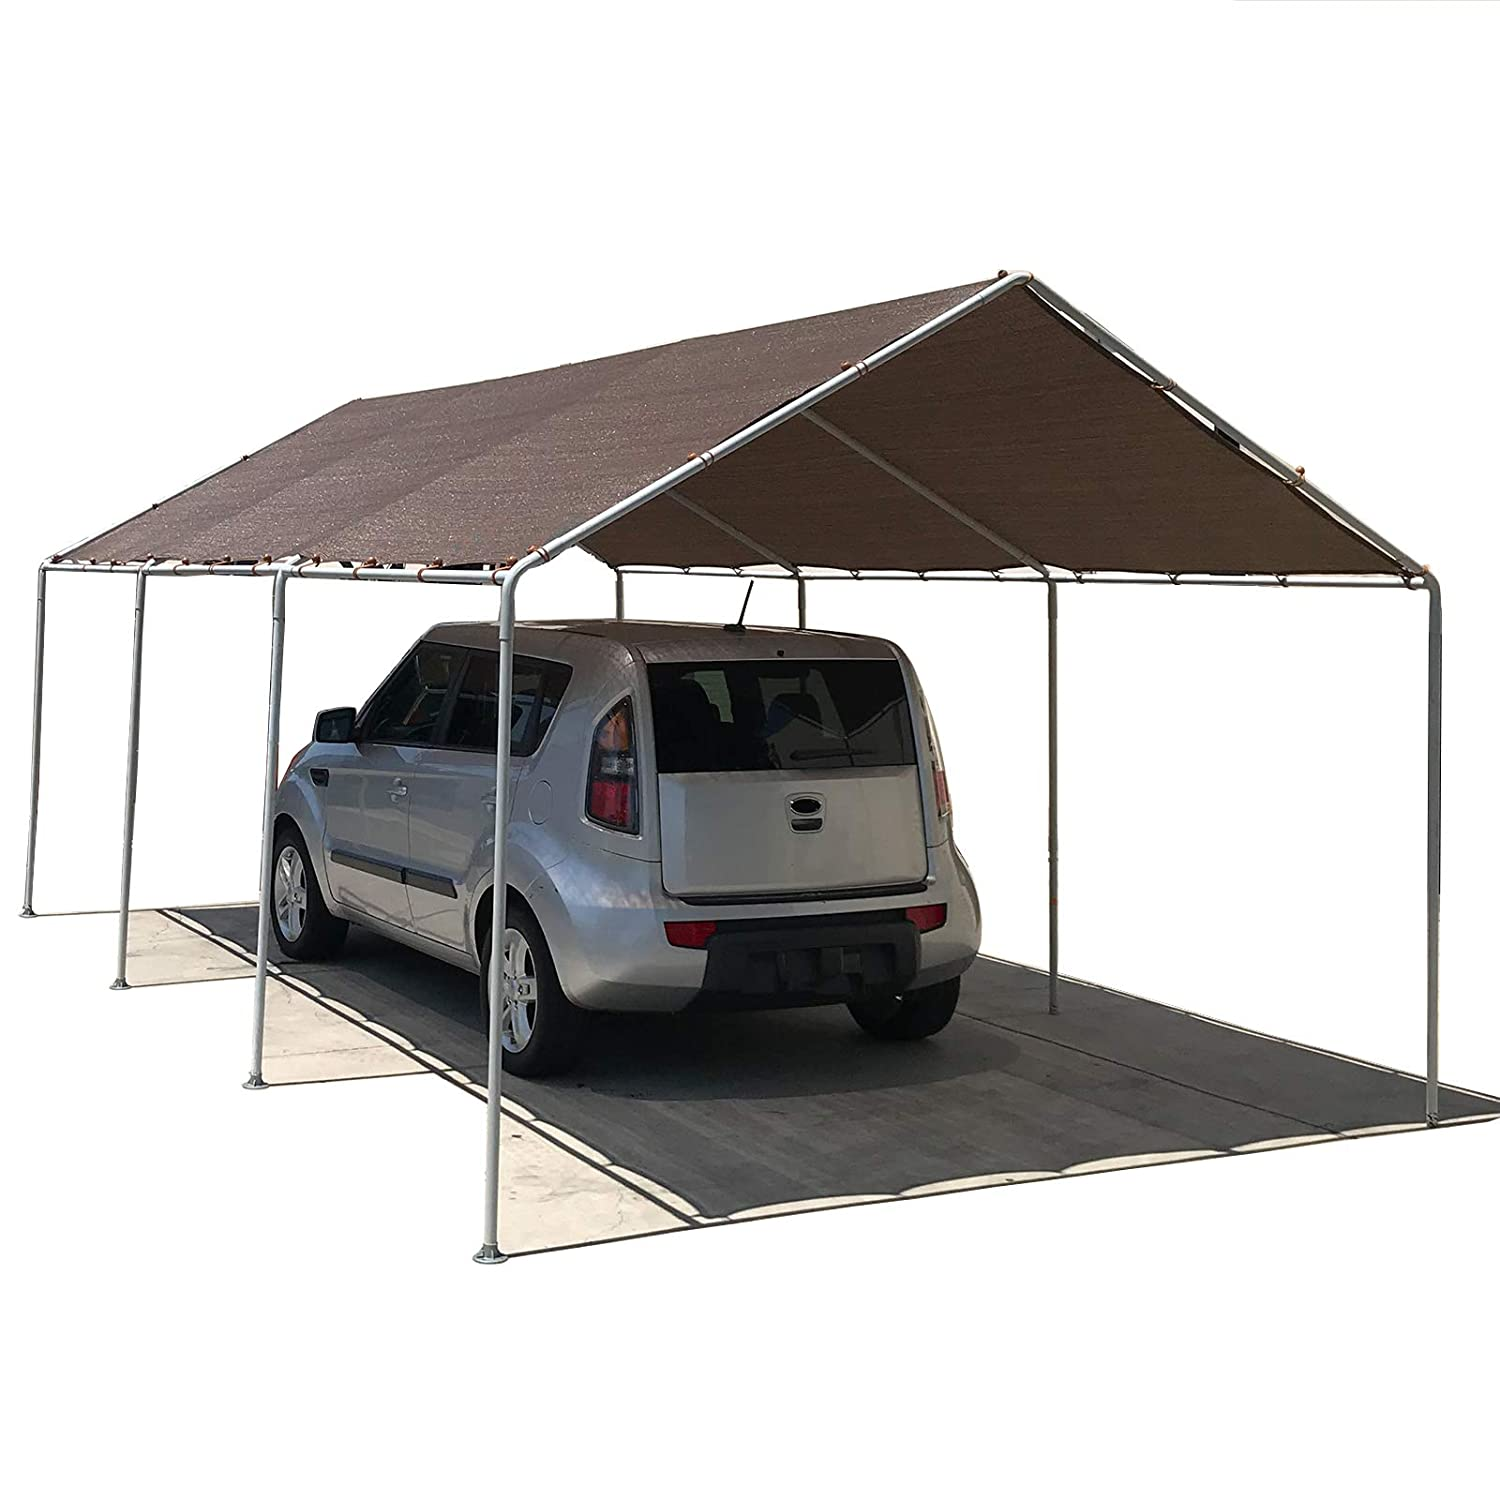 Pool or Roof Repair Items 6x6 ft, White Camping Furniture Boat Floors Alion Home Heavy Duty 12 Mil Poly Tarps Waterproof Covers for Tarpaulin Canopy Carport RV